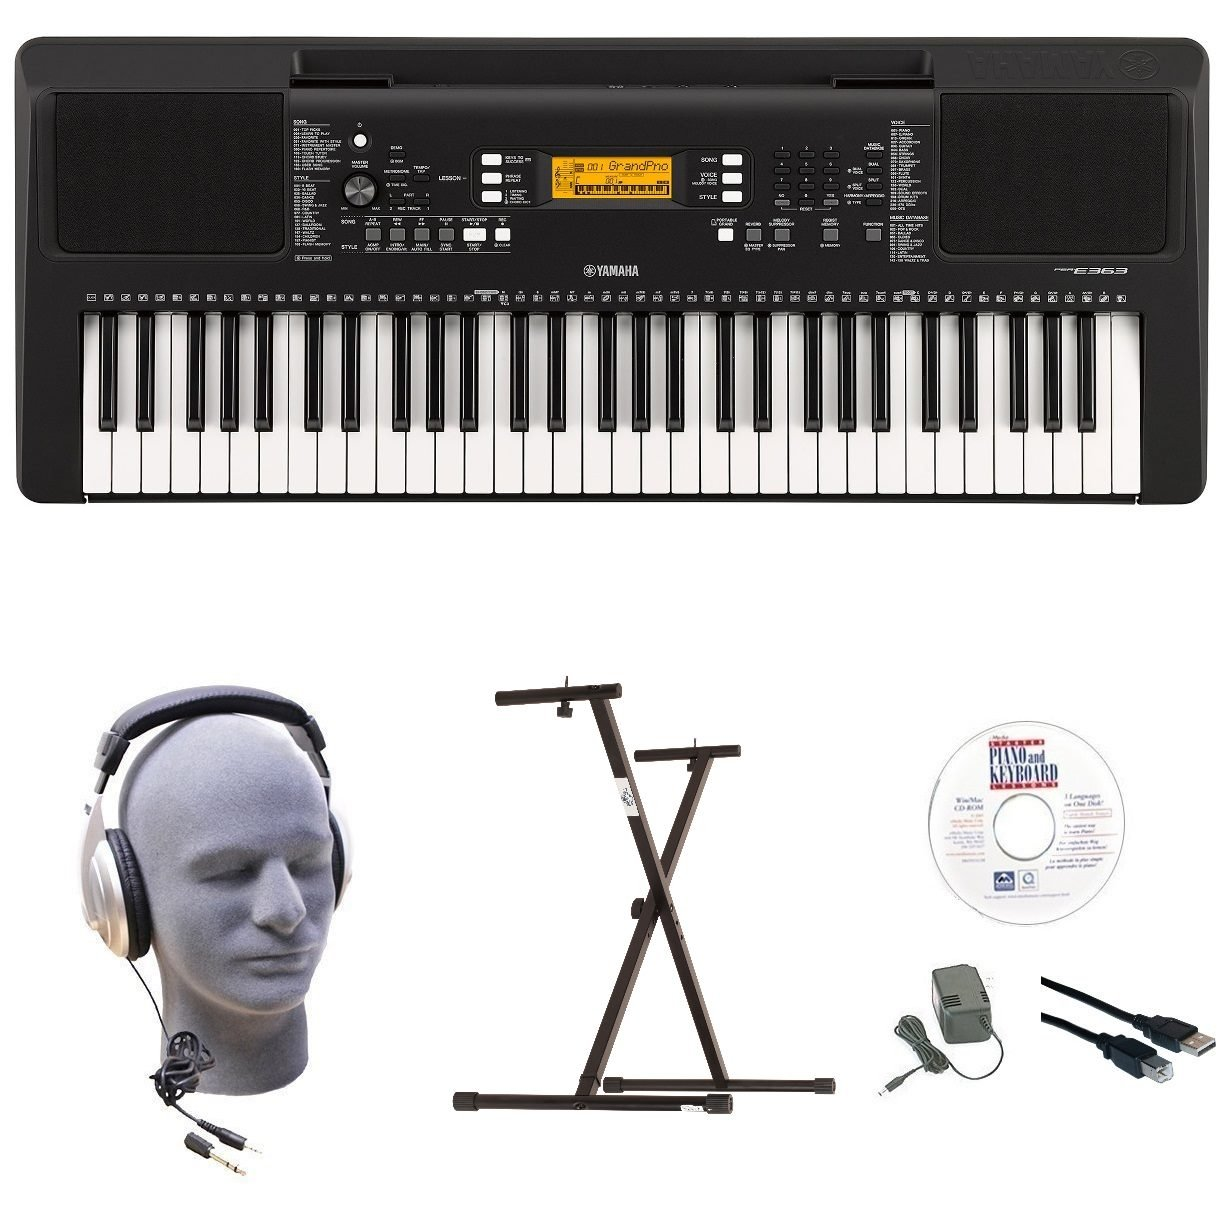 Yamaha PSR-E363 EPY 61-Key Keyboard Pack with Headphones, Power Supply, Secure Bolt-On Stand, eMedia Instructional Software, USB Cable by YAMAHA